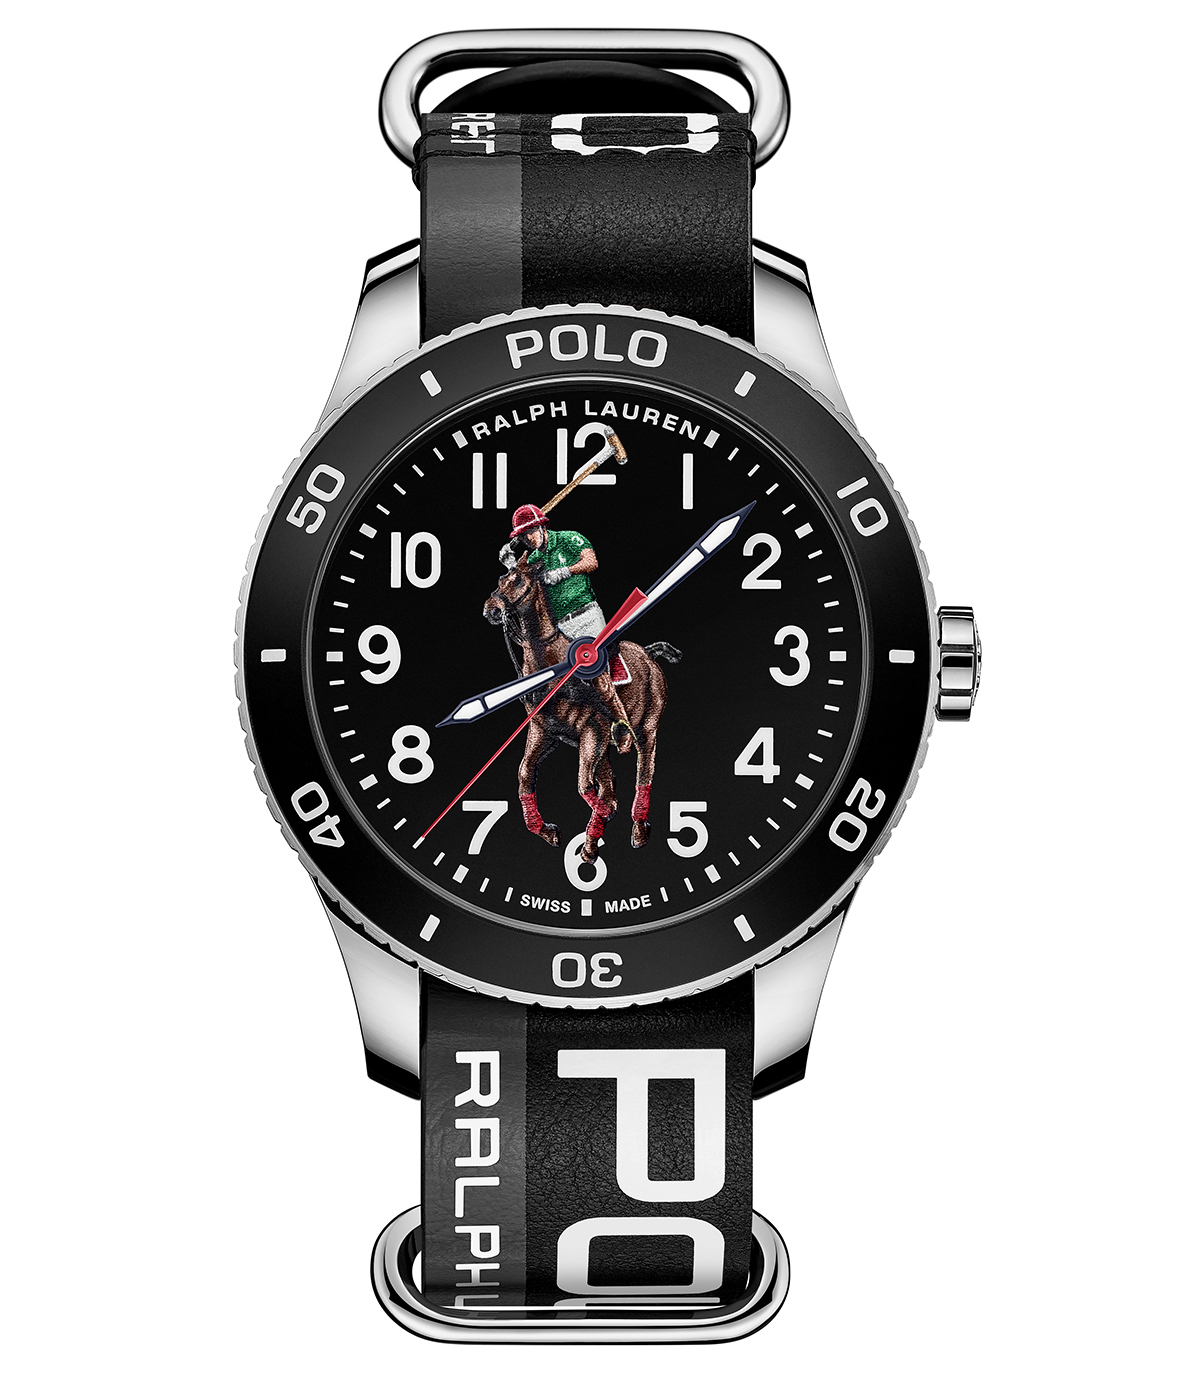 Ivy League classics, time-honoured English haberdashery, downtown styles and all-American sporting looks are the worlds that Ralph Lauren conjured up when he named his company Polo in 1967. These themes are reflected in the new Polo Watch line, with its original reinterpretation of the famous Ralph Lauren logo, printed in 3D with several layers of colour.